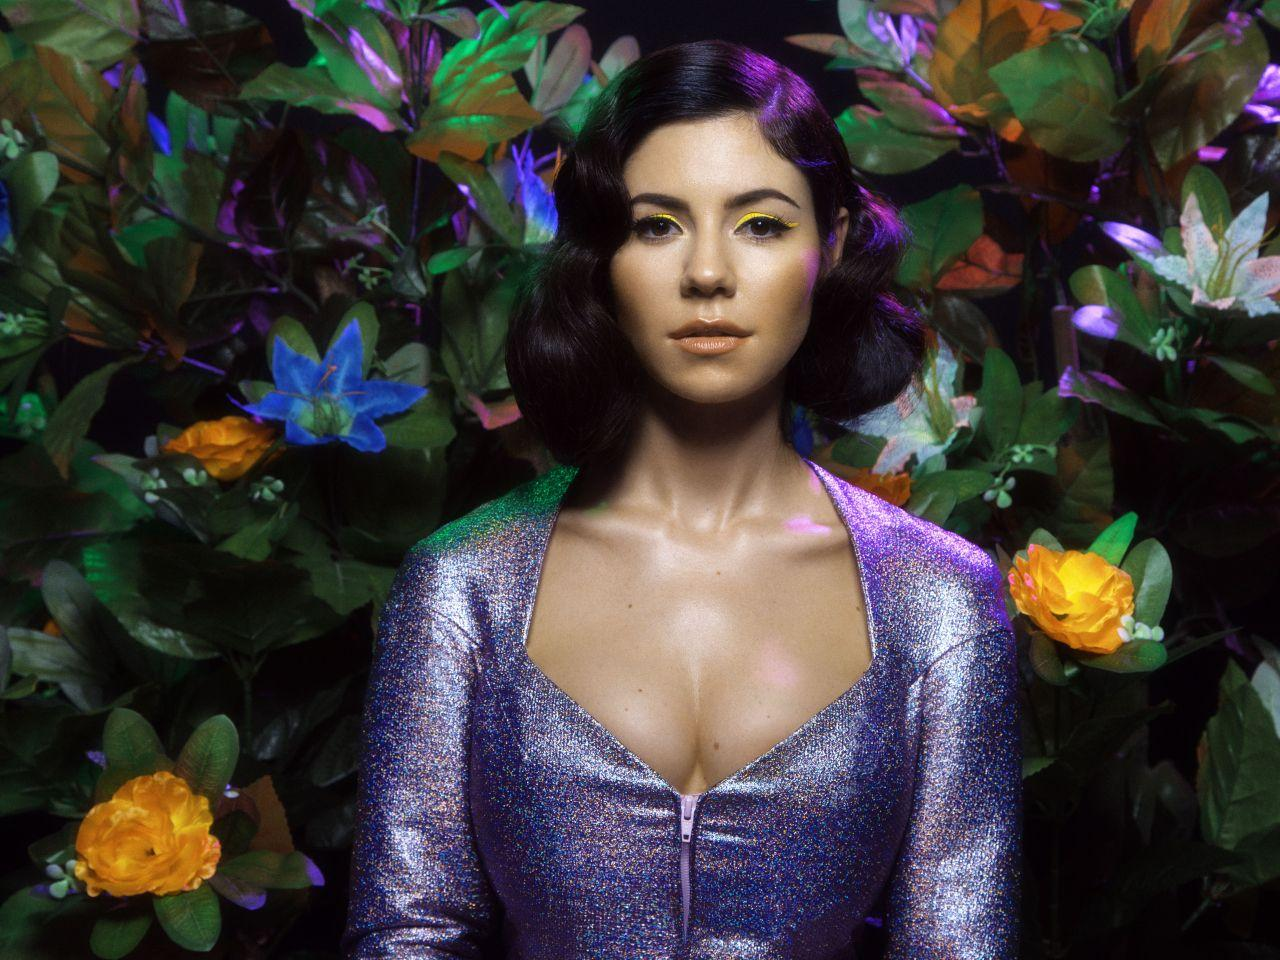 Download Marina And The Diamonds 1280x960 Resolution, HD 4K Wallpapers